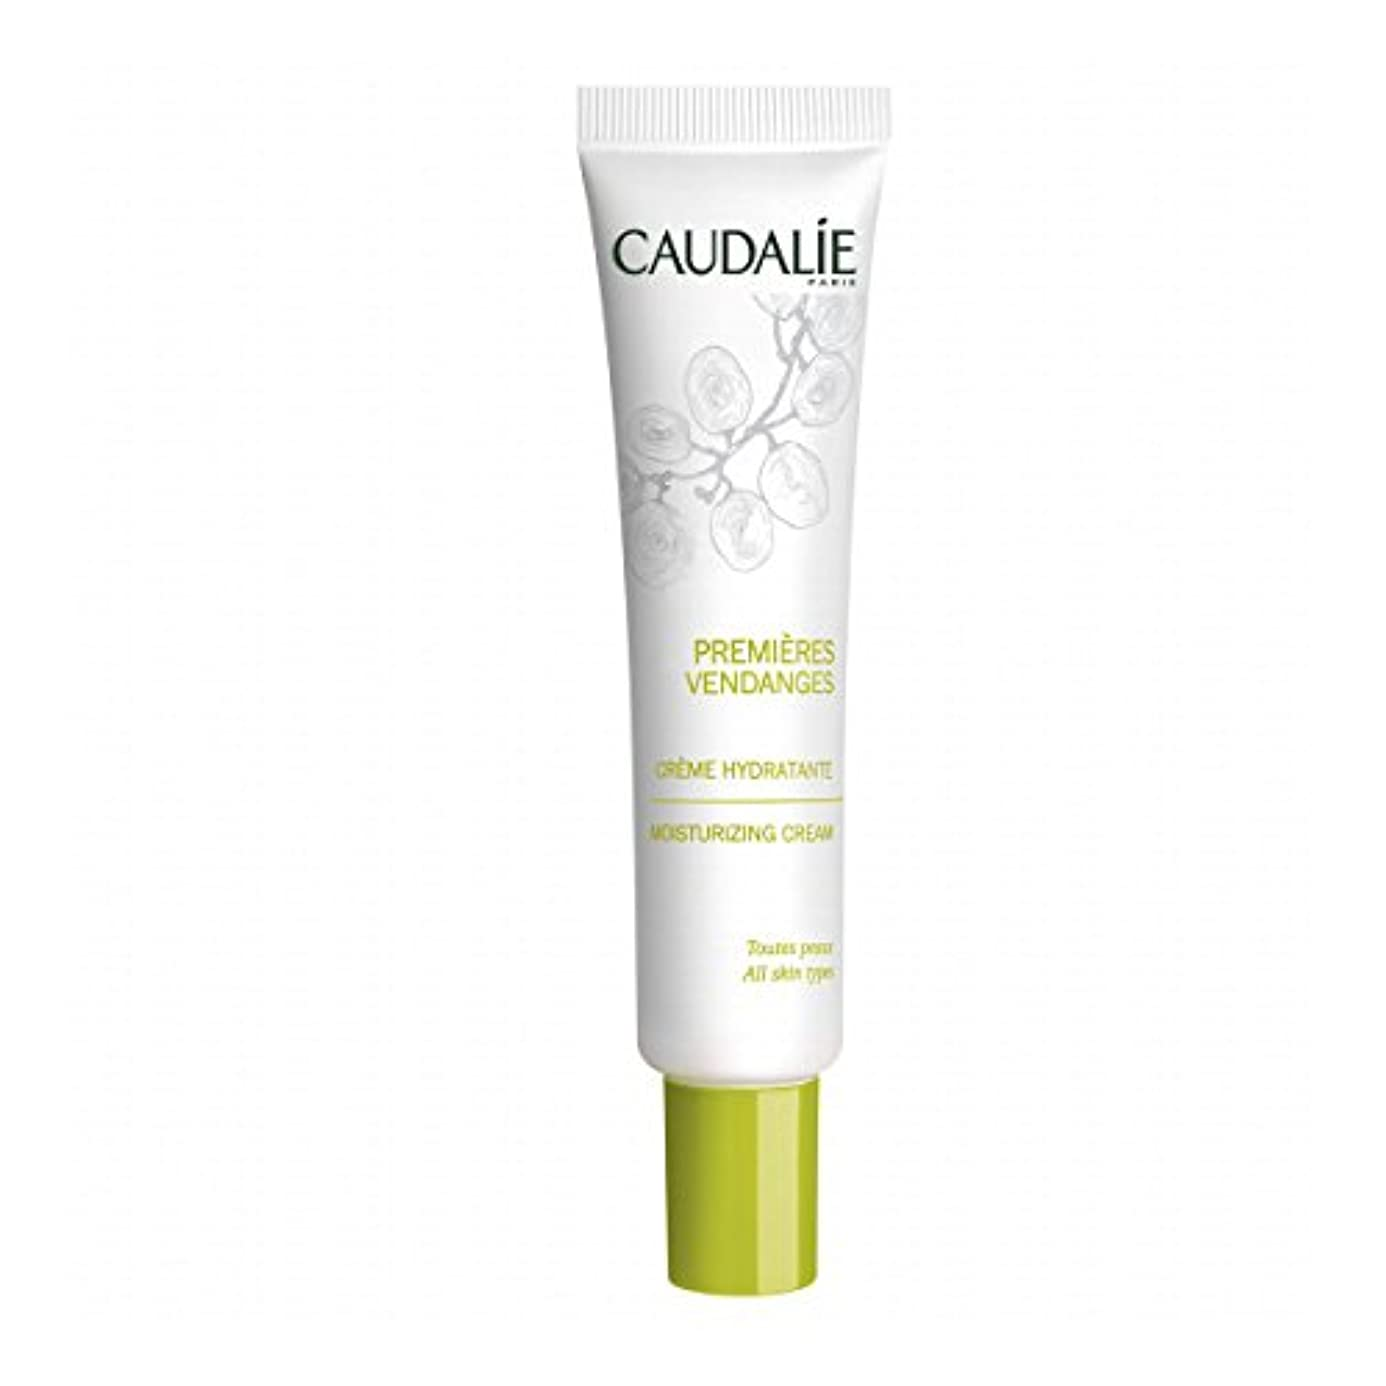 測定サイトラインティームCaudalie Premieres Vendanges Moisturizing Cream 40ml [並行輸入品]